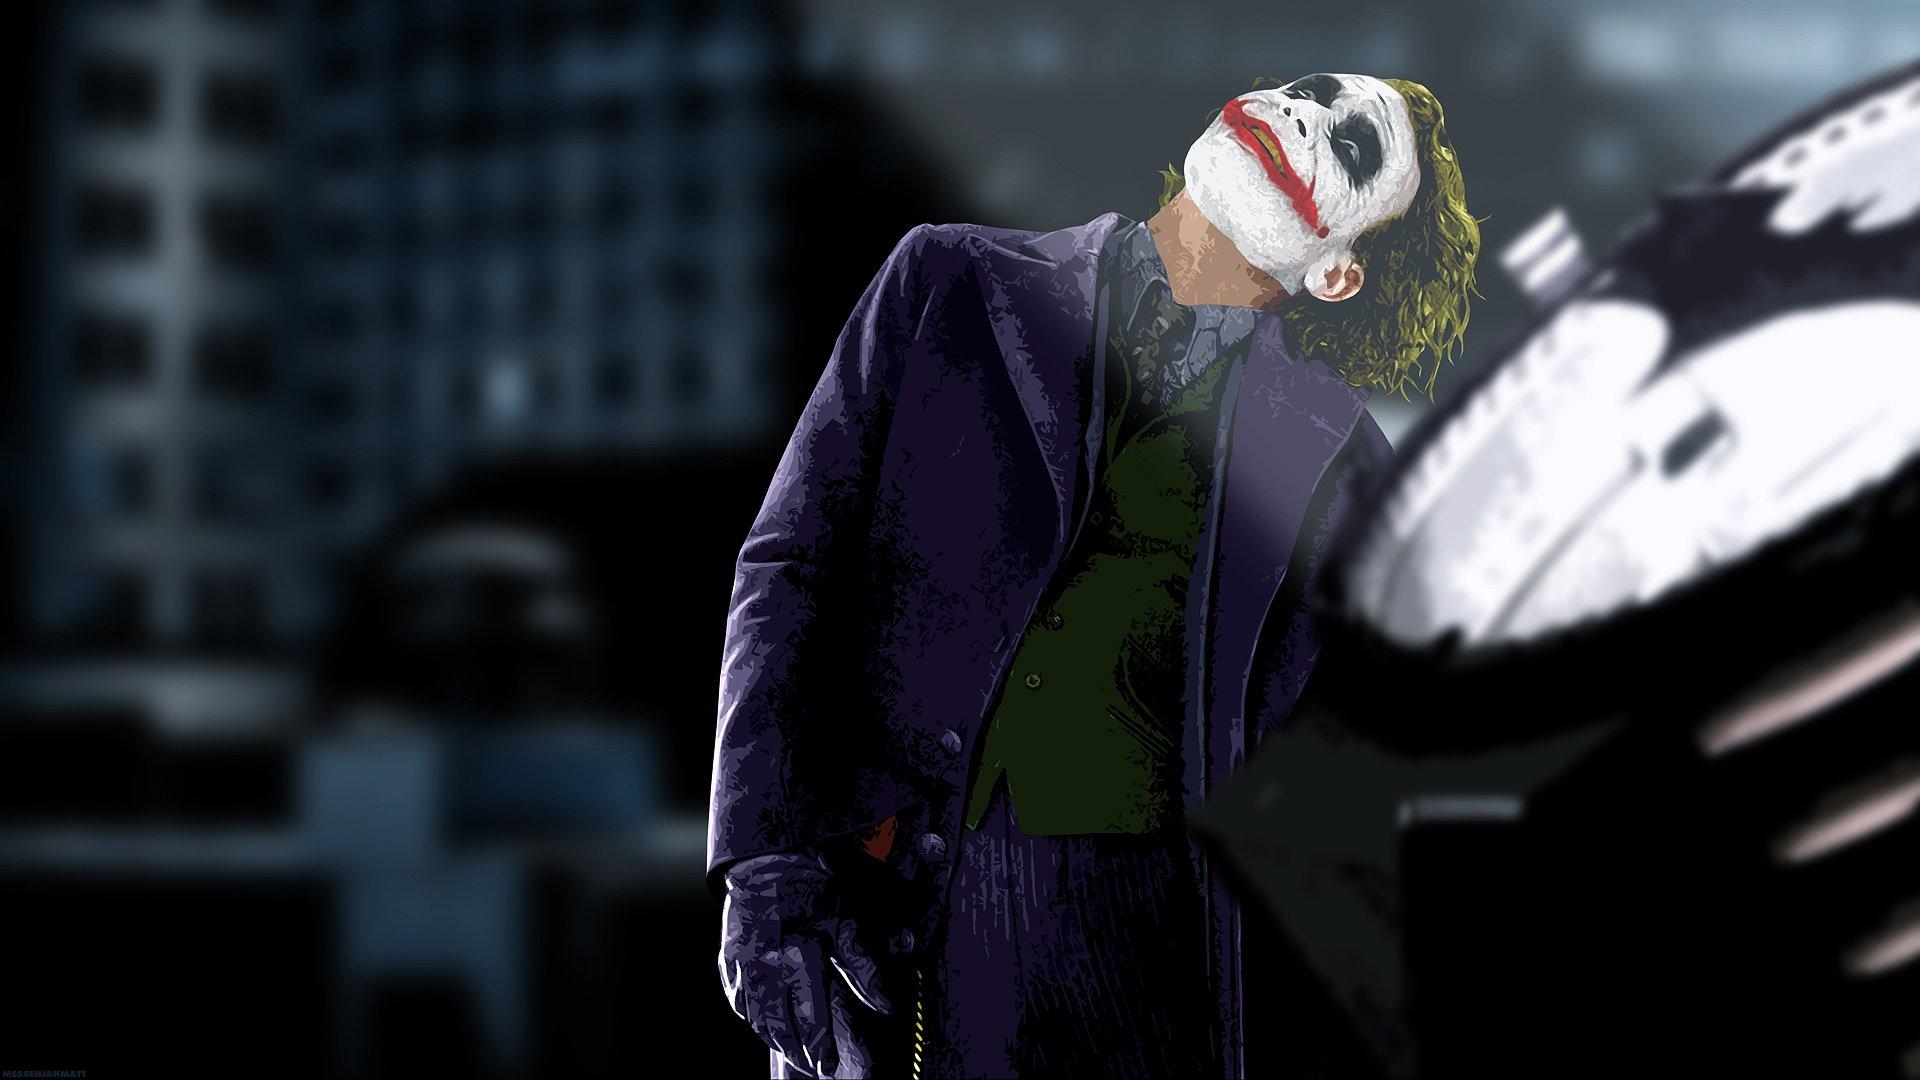 The Joker The Dark Knight Wallpaper 1920x1080 274922 Wallpaperup